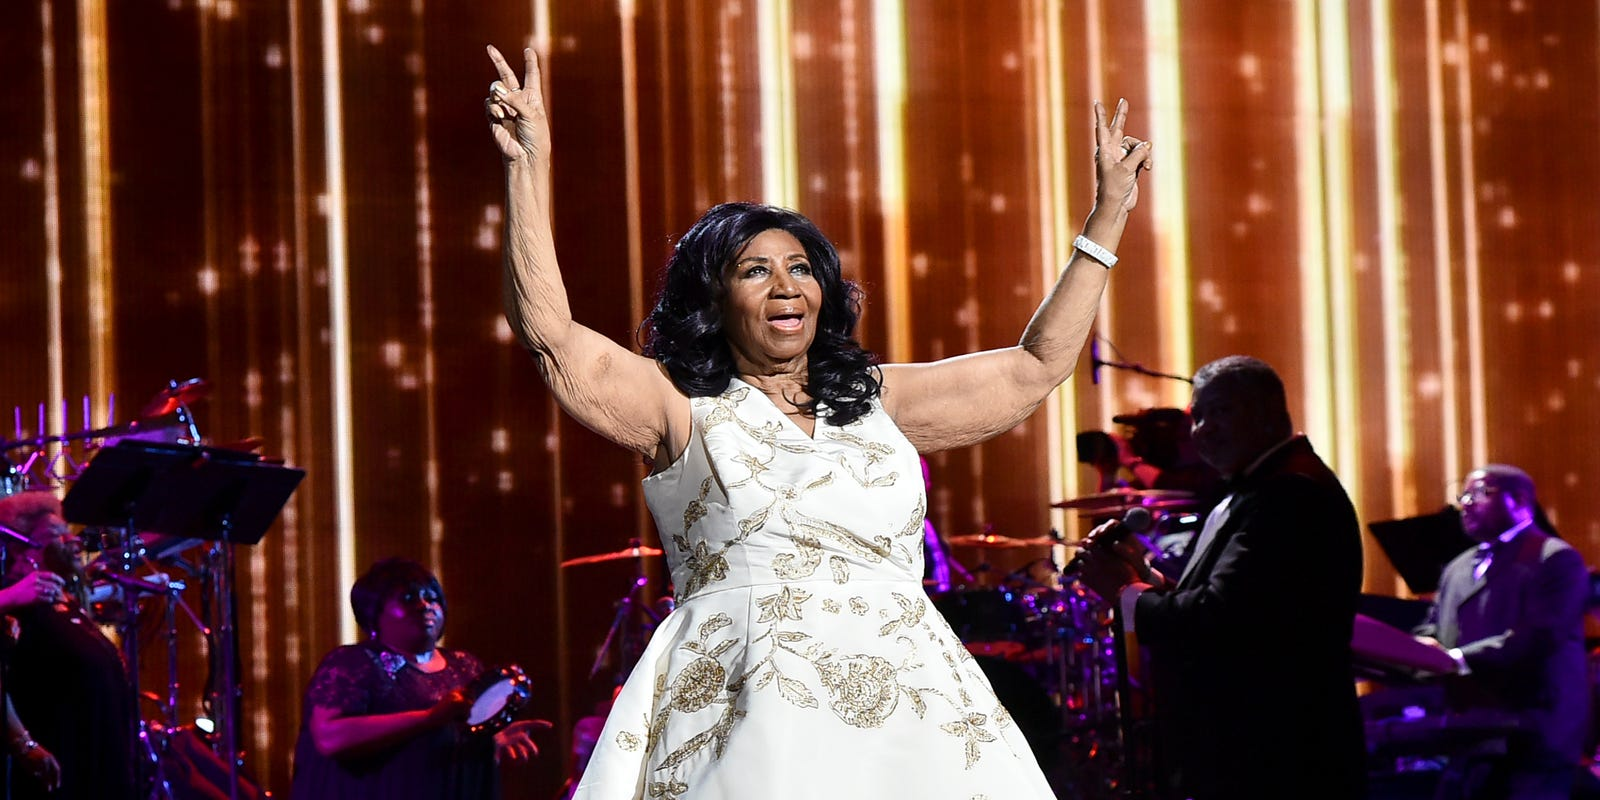 Aretha Franklin, many more celebs, died from pancreatic cancer